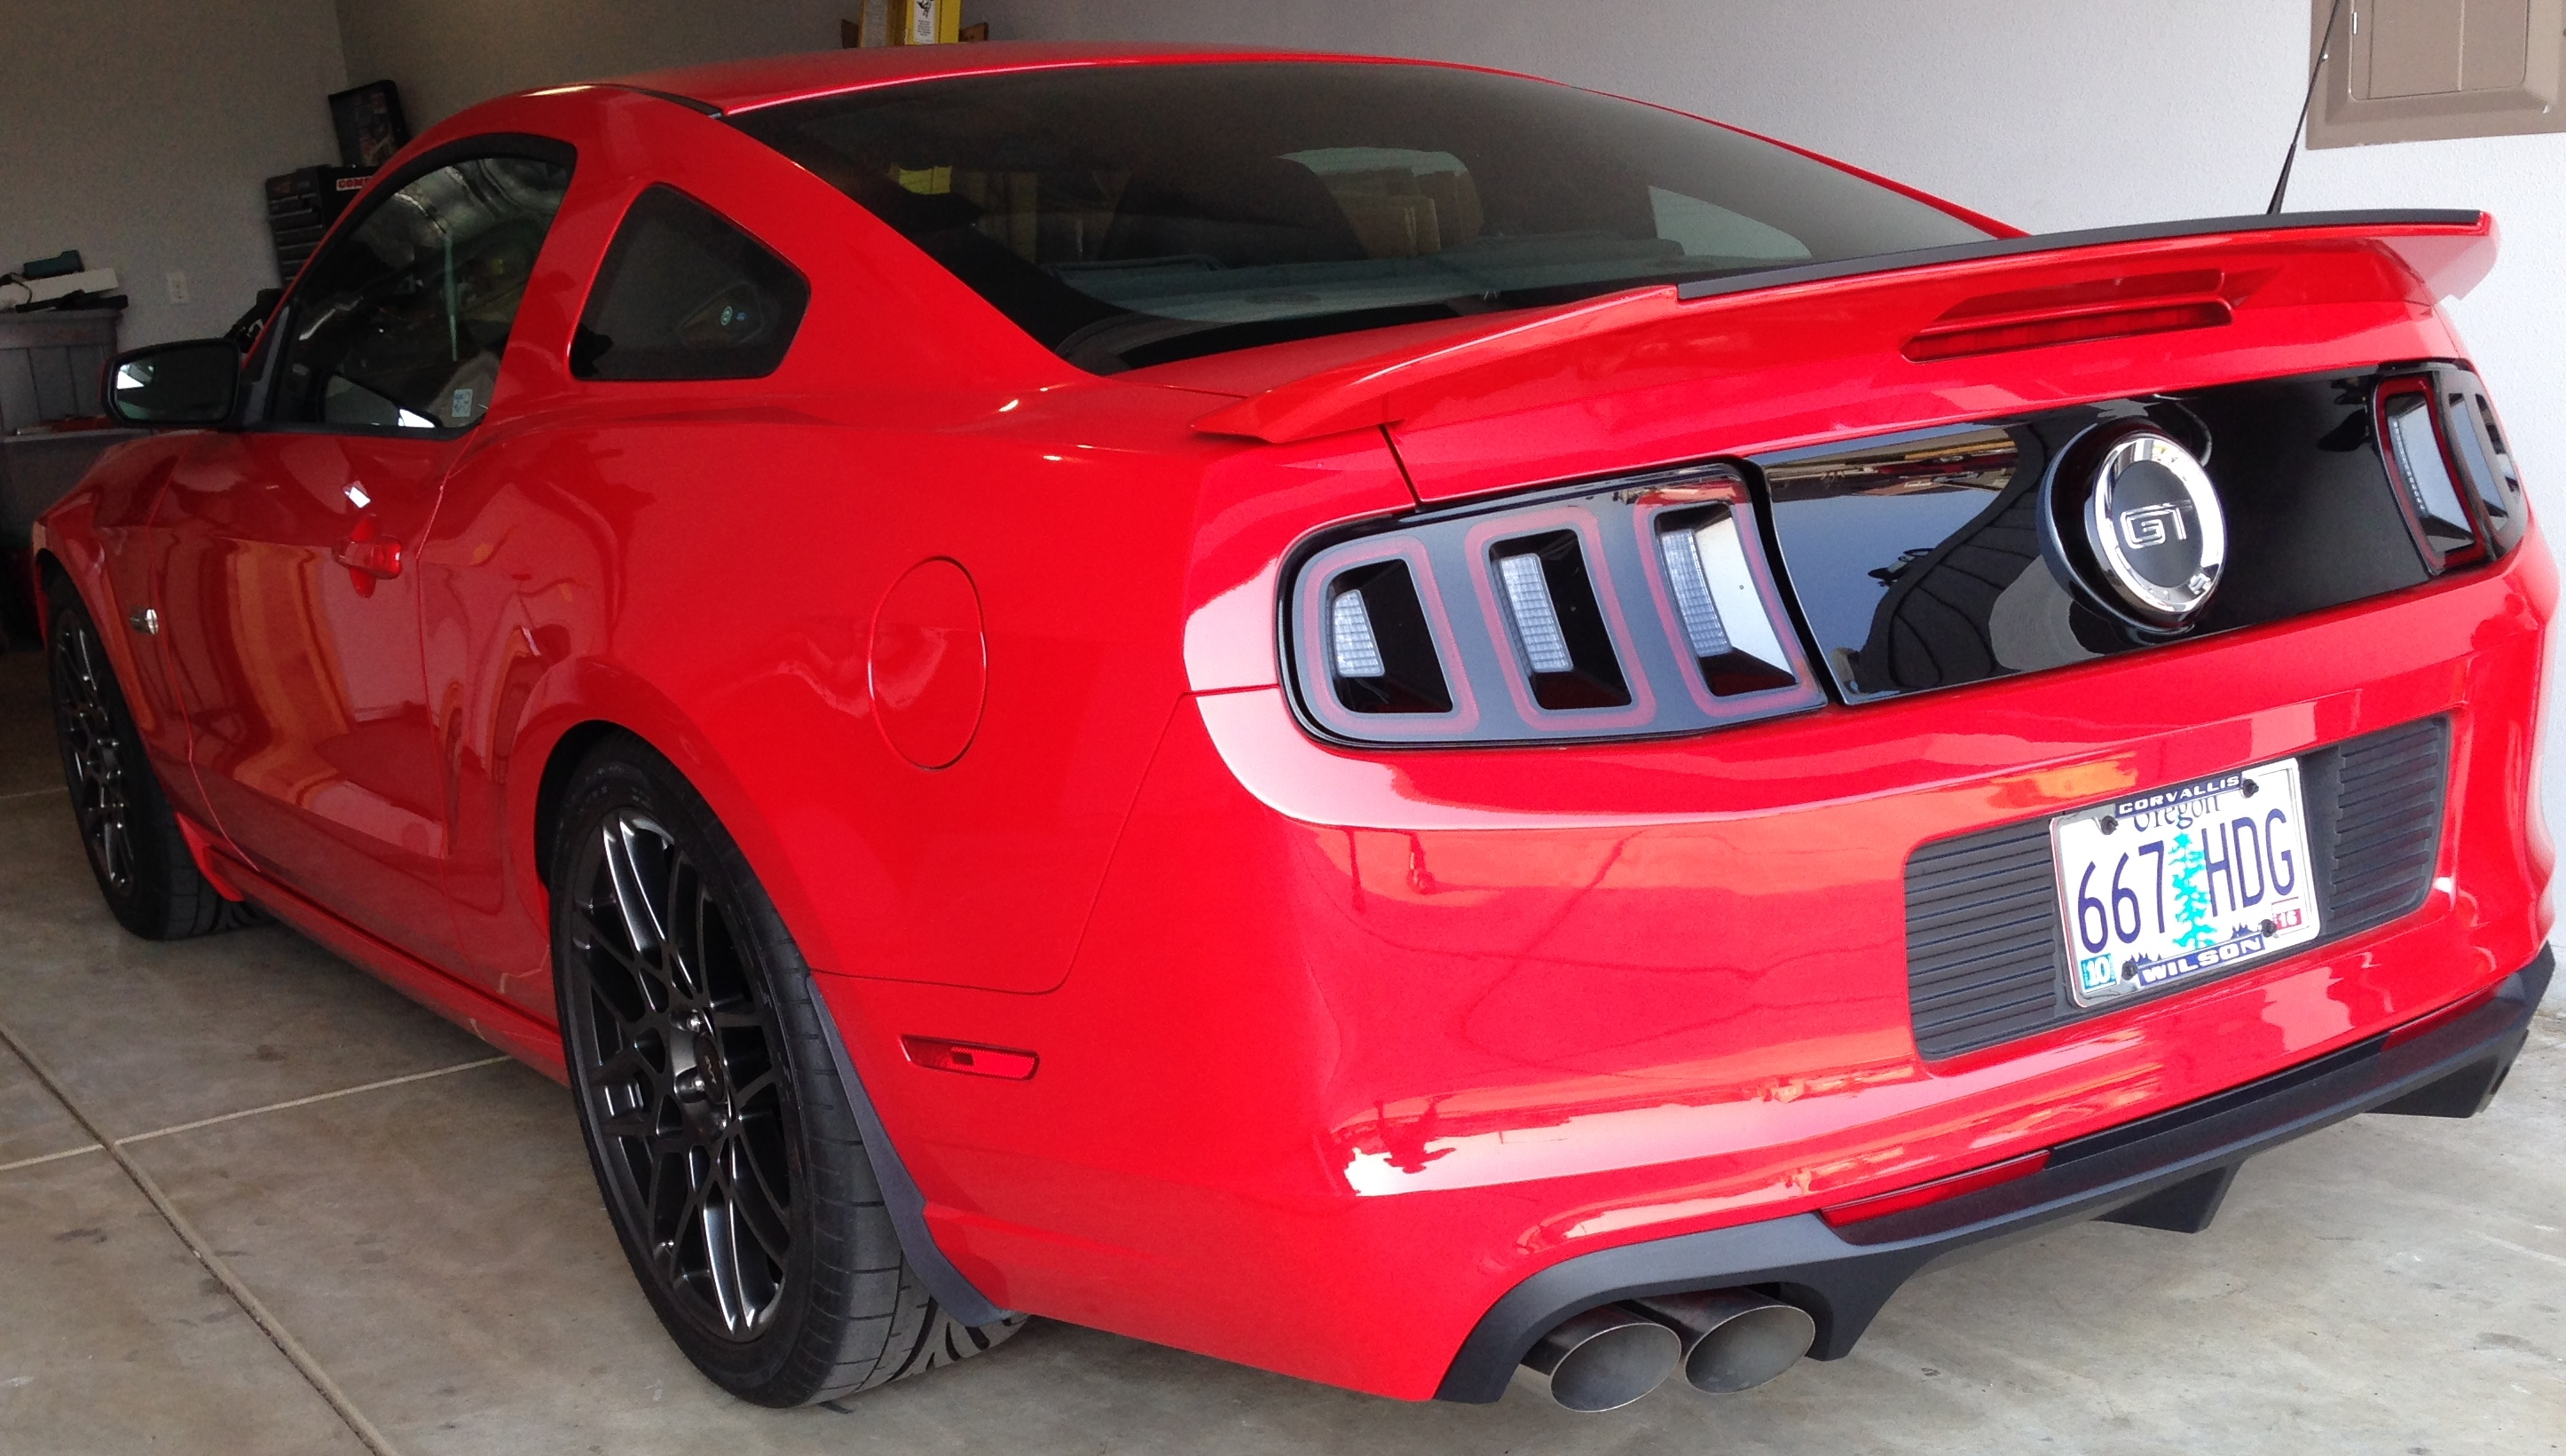 roush axle back with quad tips